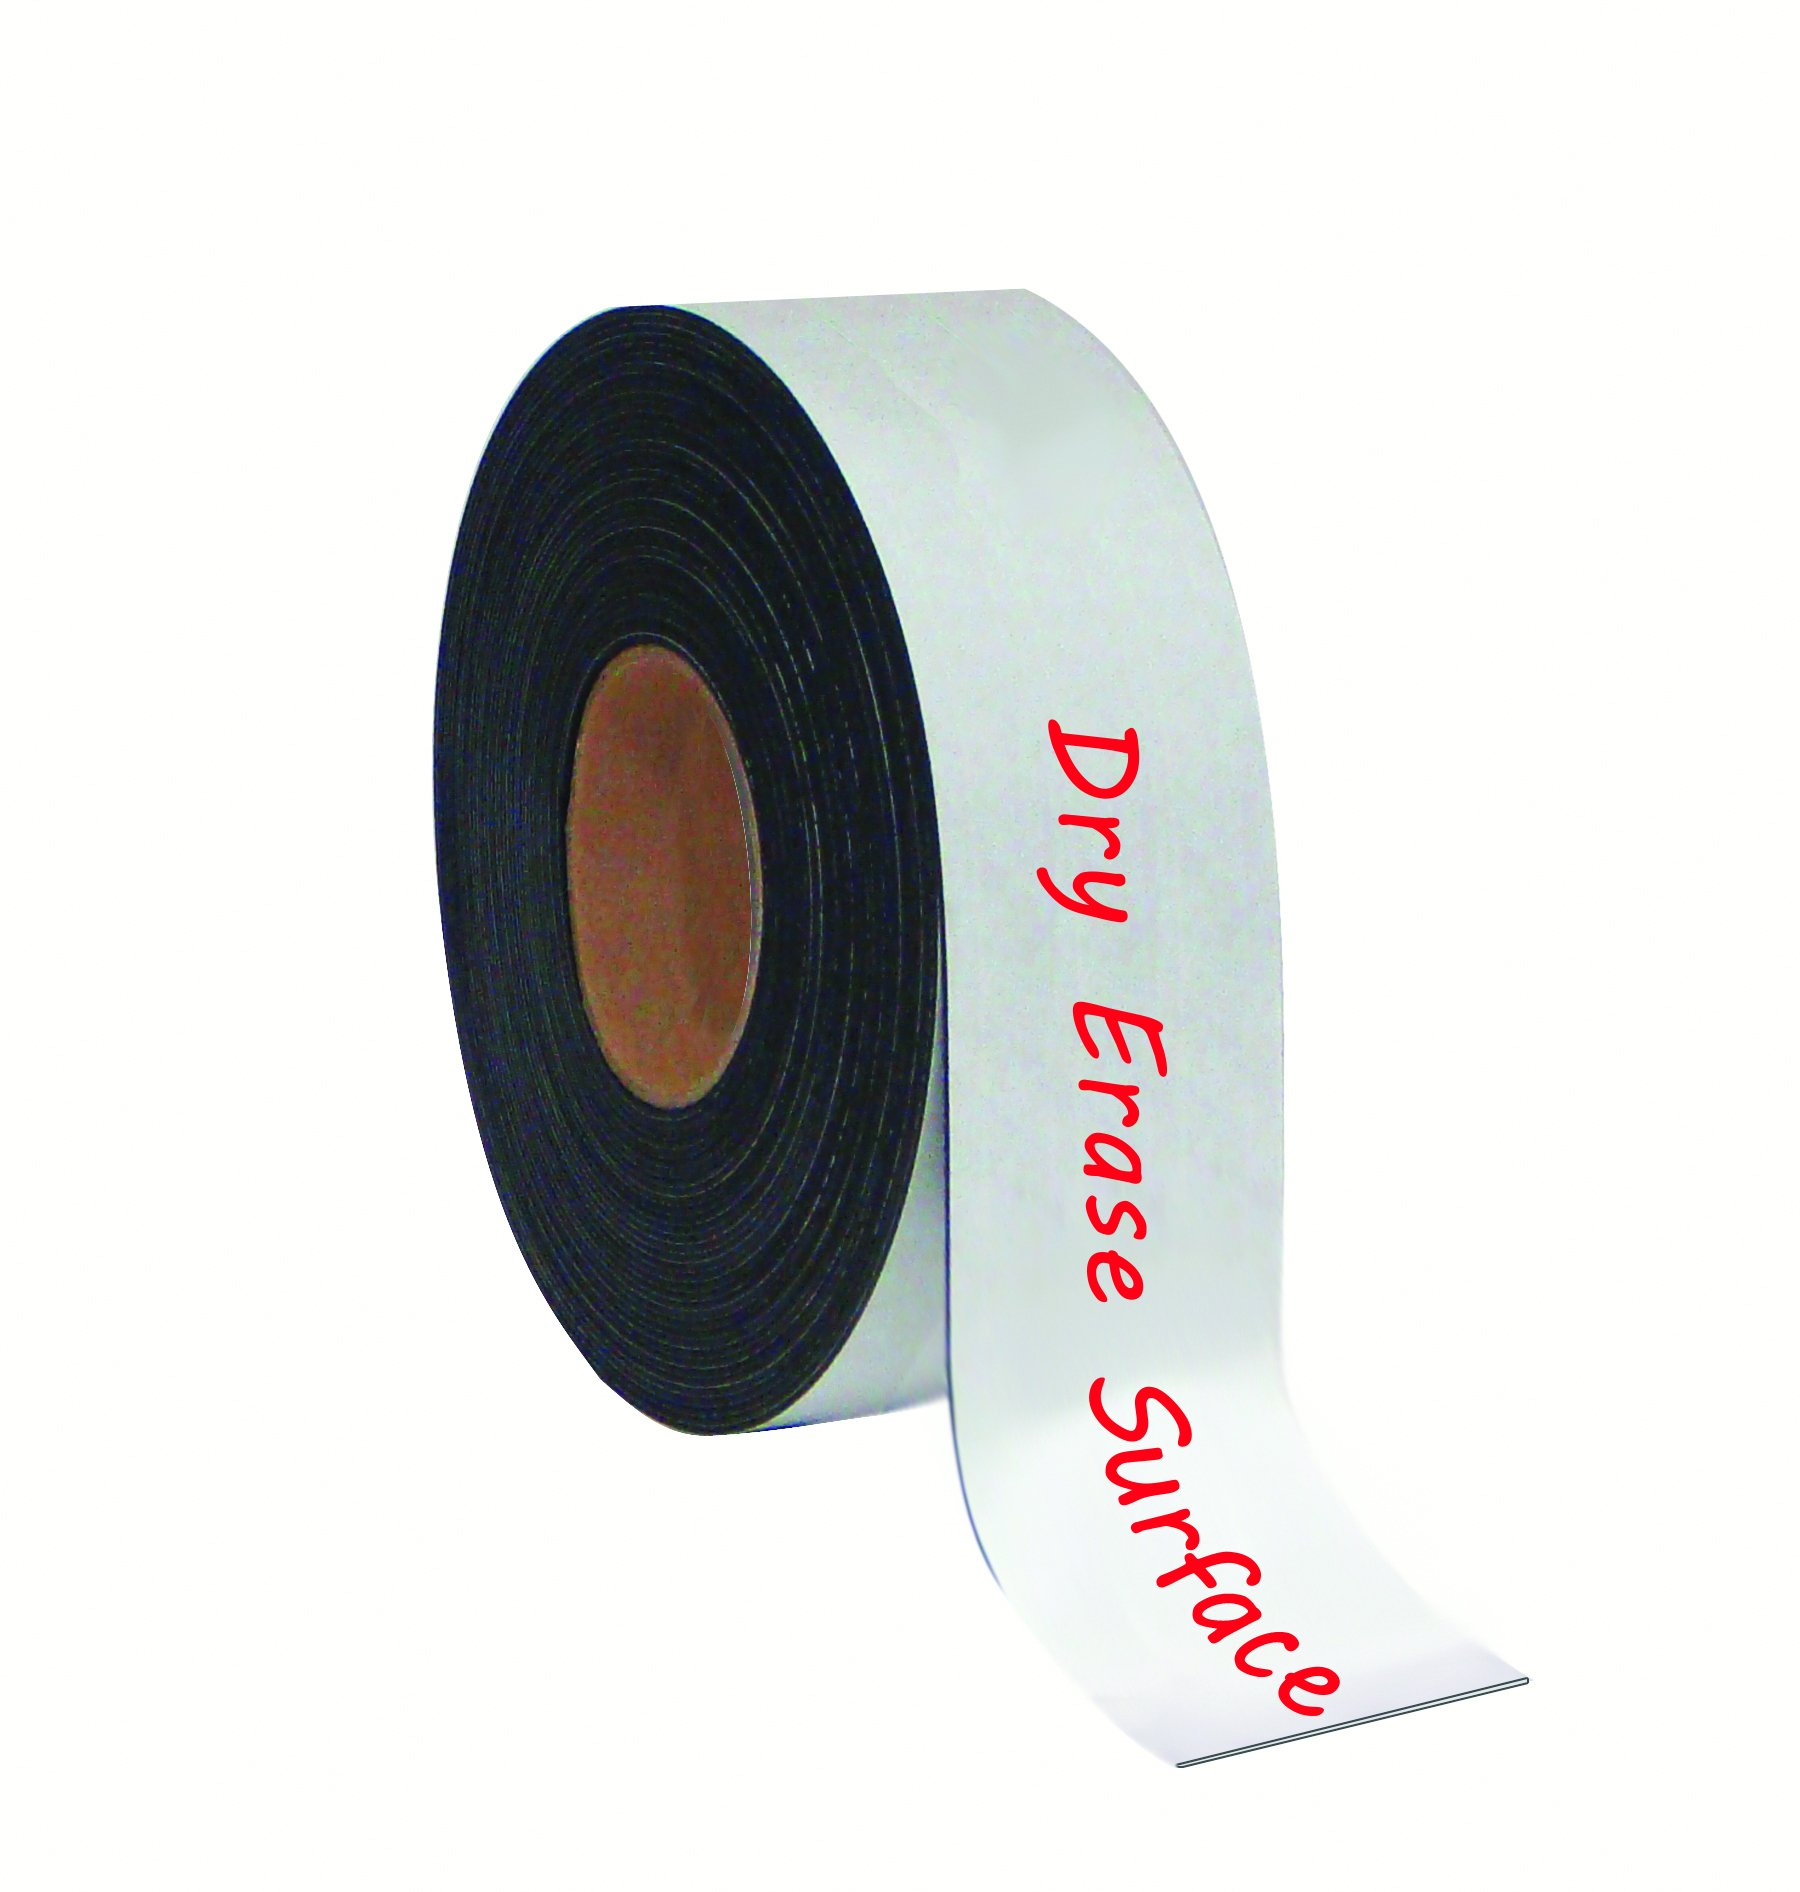 MasterVision Tape Roll Magnetic Dry Erase, 2'' x 50' White